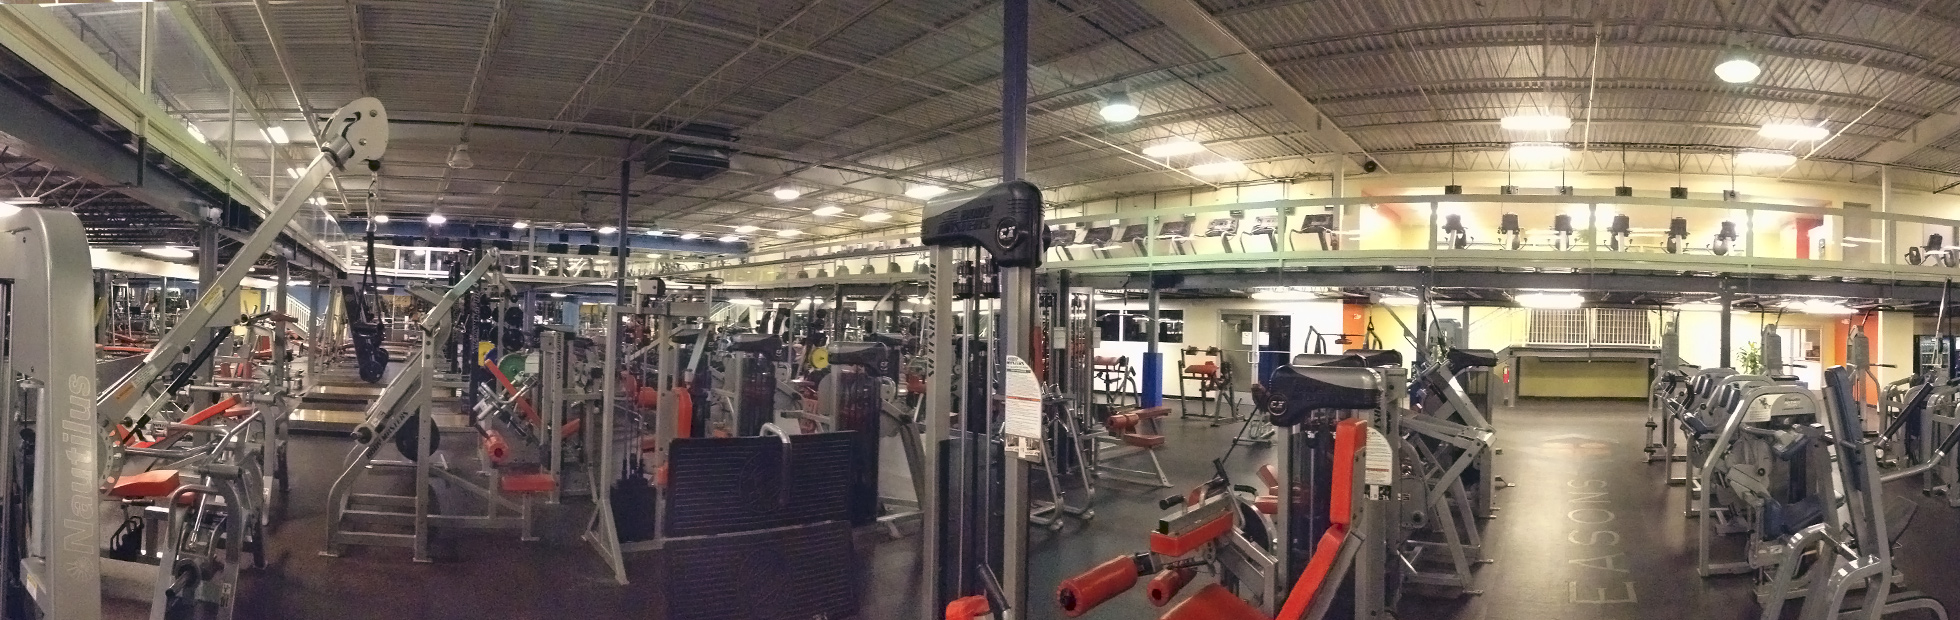 LARGEST WORKOUT ROOMS IN NEW JERSEY!